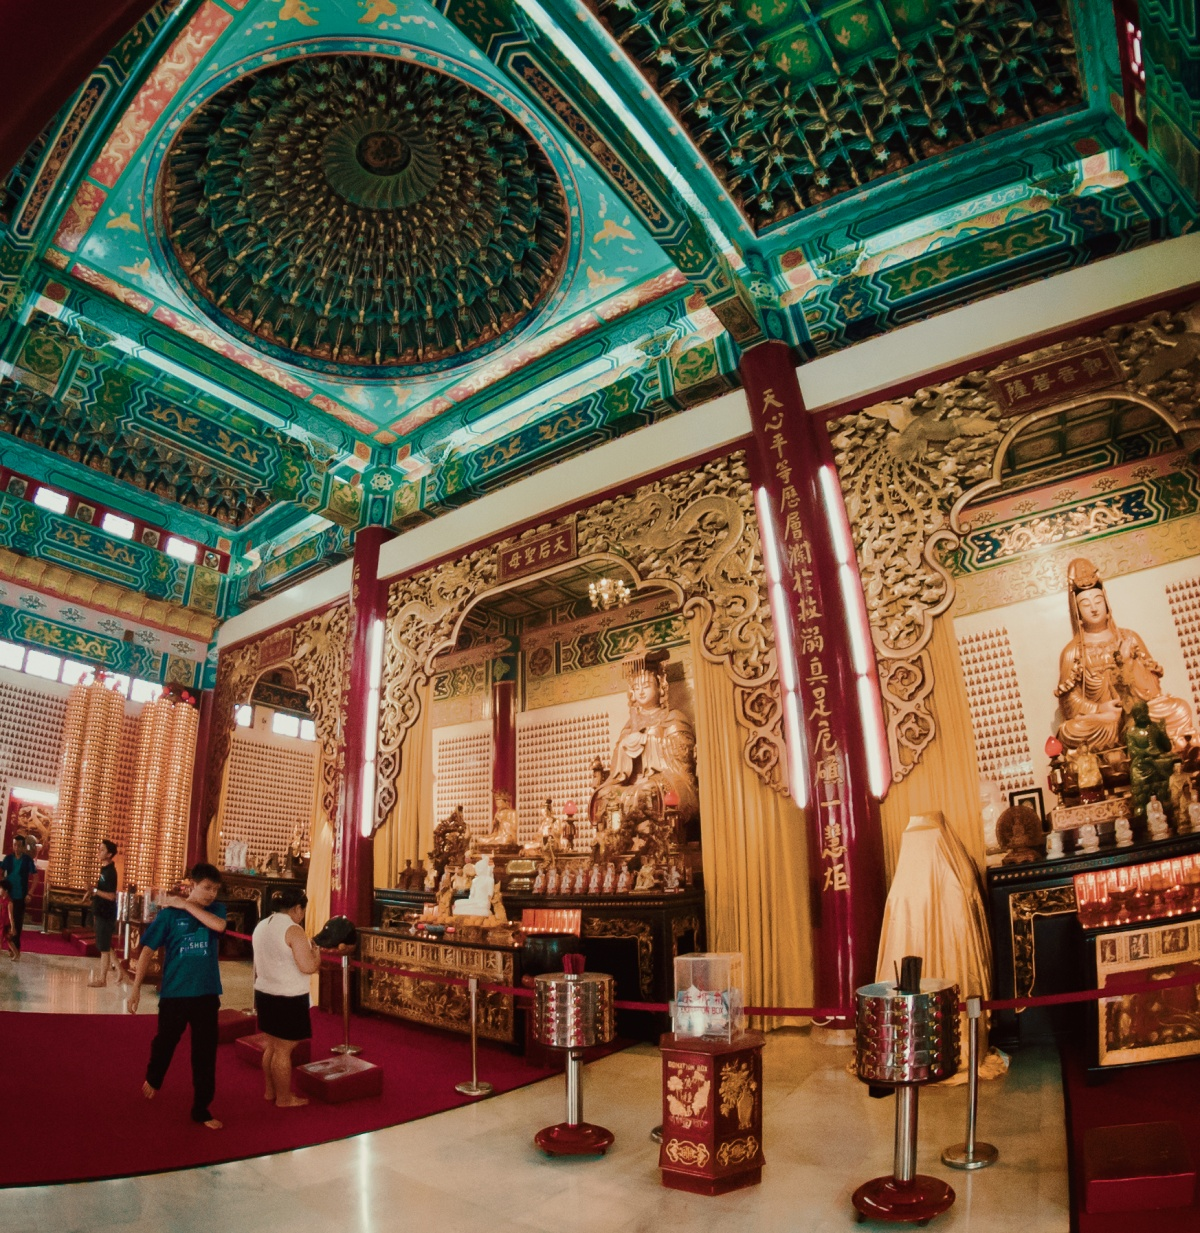 Interior picture of Buddhist Thean Hou temple in Kuala Lumpur